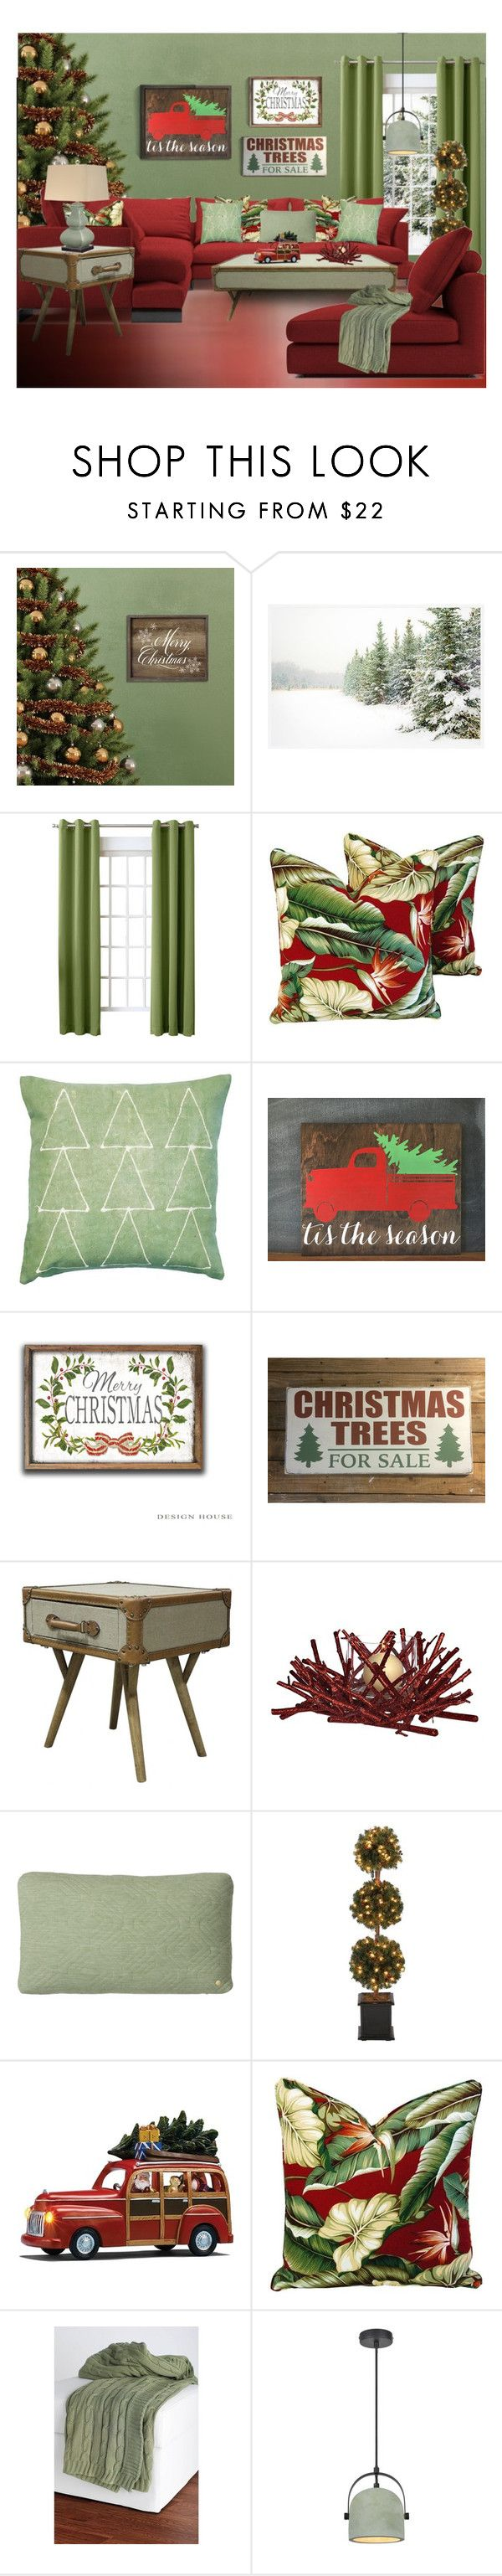 """""""Decorate with Red & Green"""" by kwaldrip ❤ liked on Polyvore featuring interior, interiors, interior design, home, home decor, interior decorating, Stratton Home Décor, Pottery Barn, Sun Zero and Waldrip"""